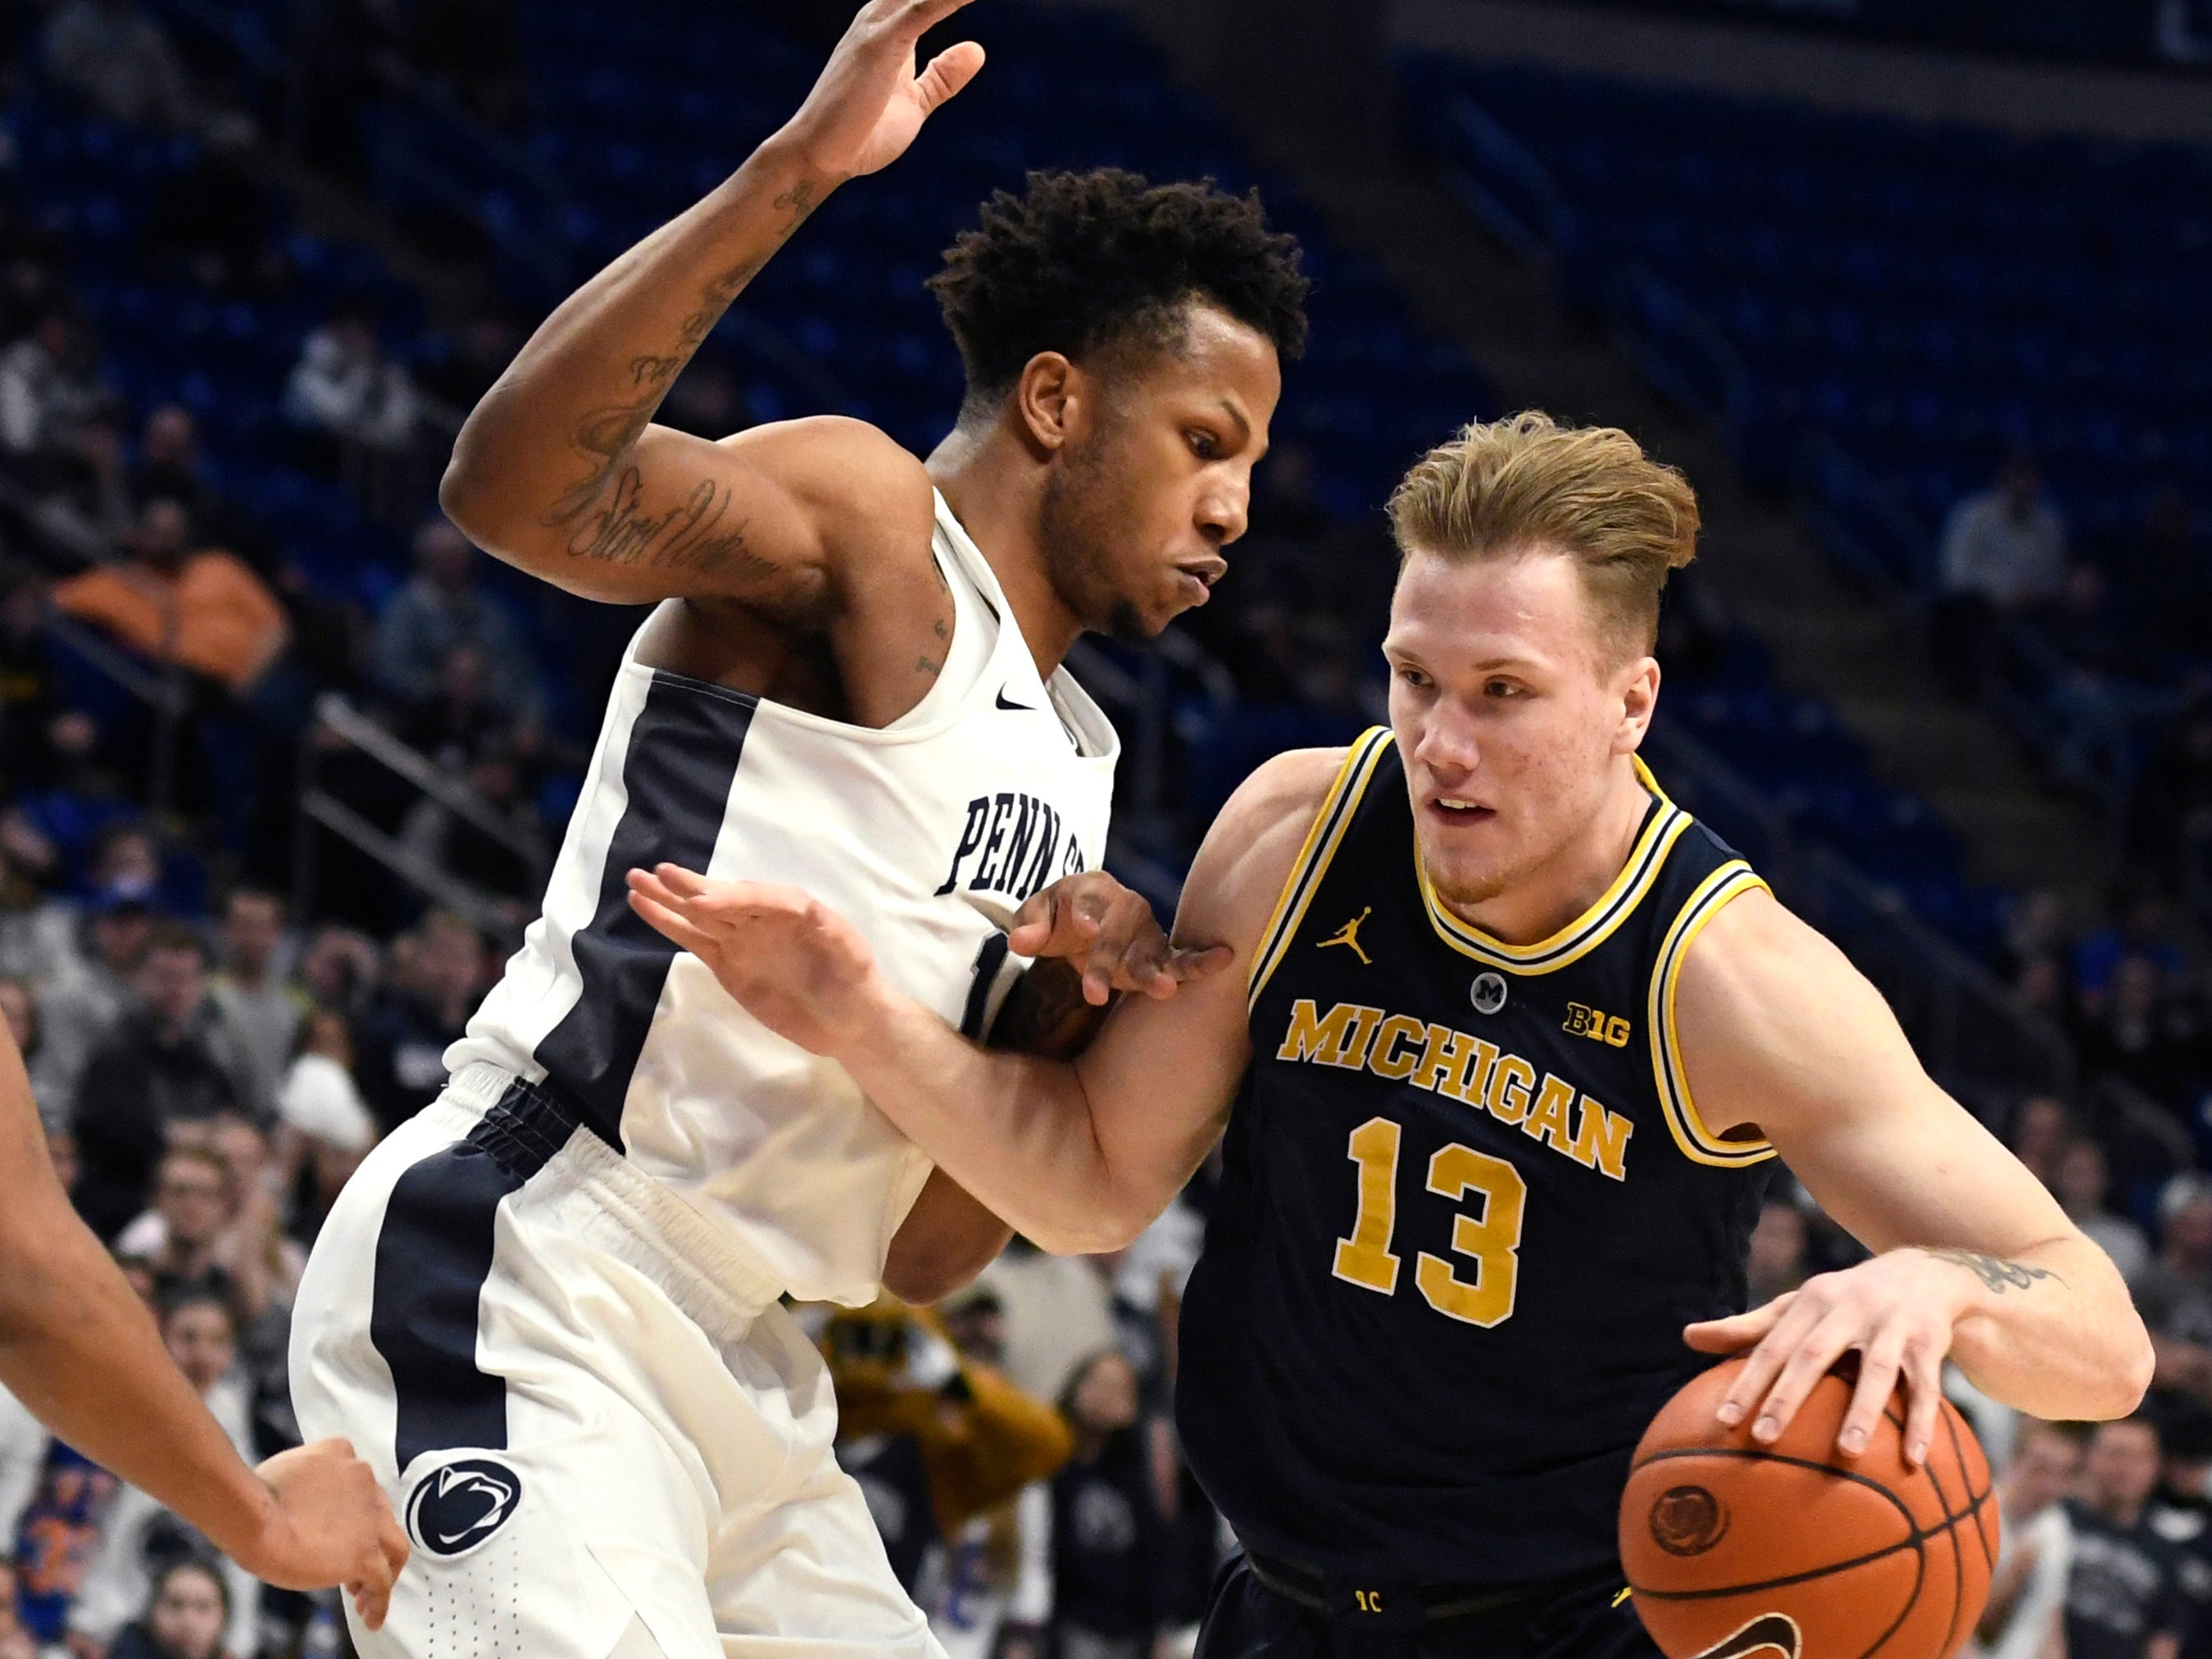 Michigan forward Ignas Brazdeikis dribbles around Penn State forward Lamar Stevens during the first half Tuesday, Feb. 12, 2019, in State College, Pa.